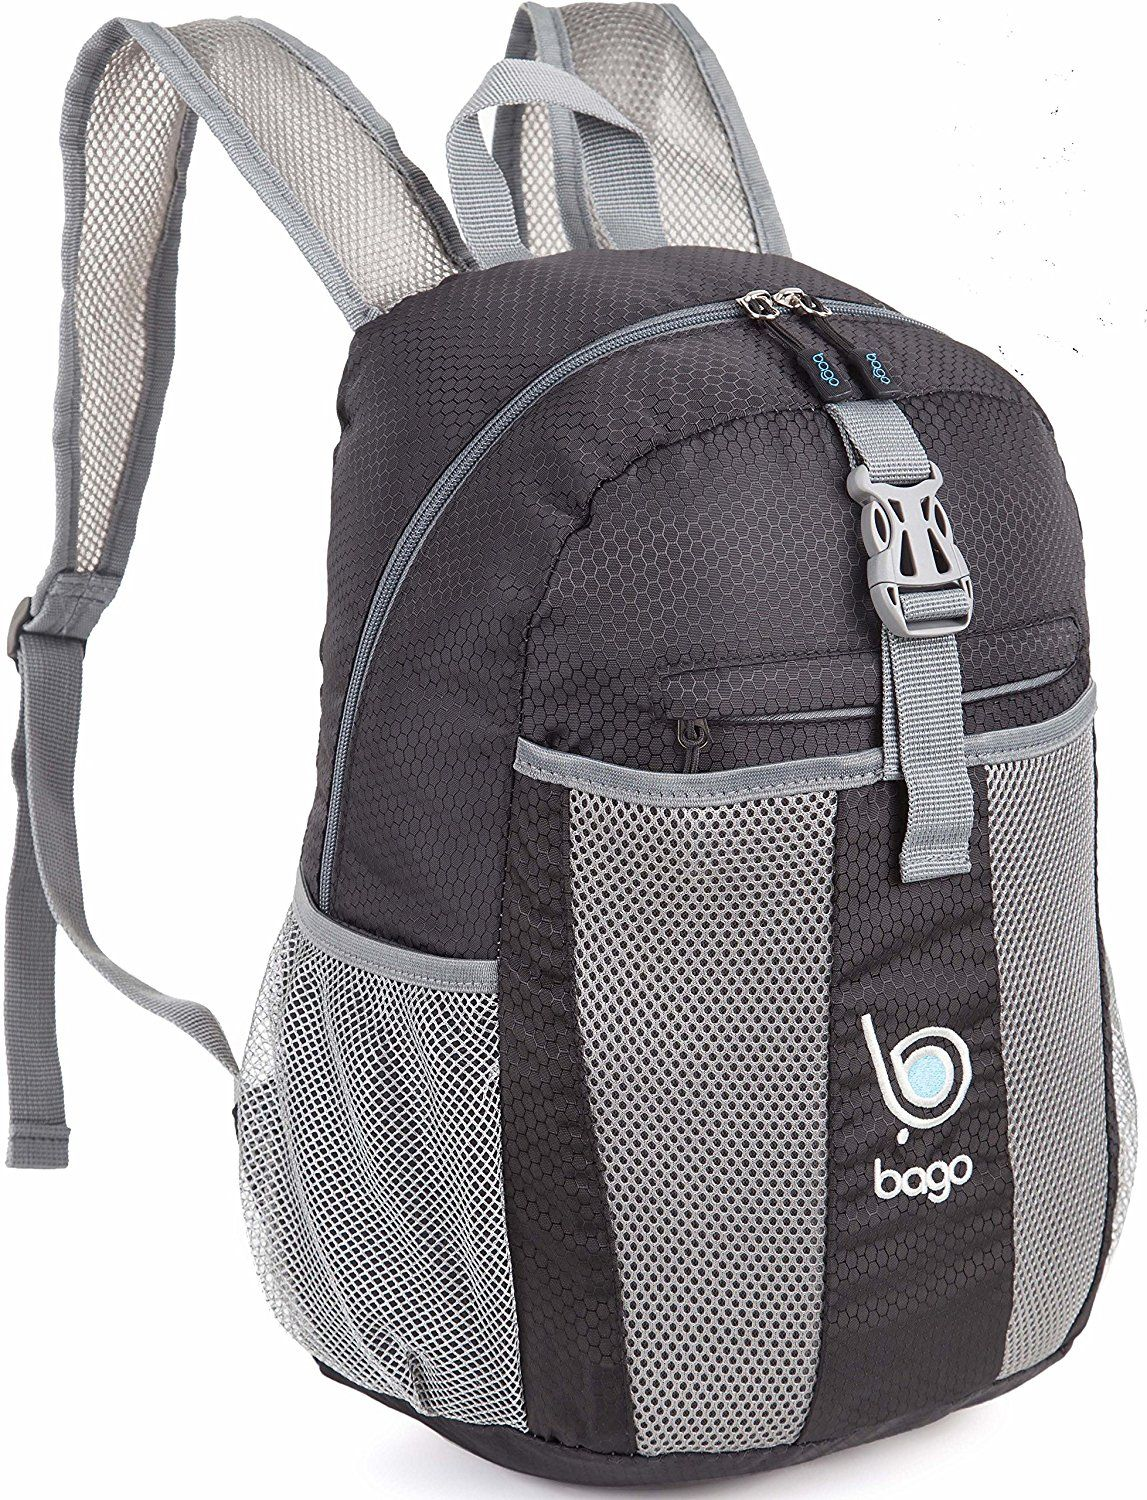 a1088dd2b9 Bago Lightweight Foldable Waterproof Backpack - Bag is Packable    Collapsible Sale 50%. Now only  14.95